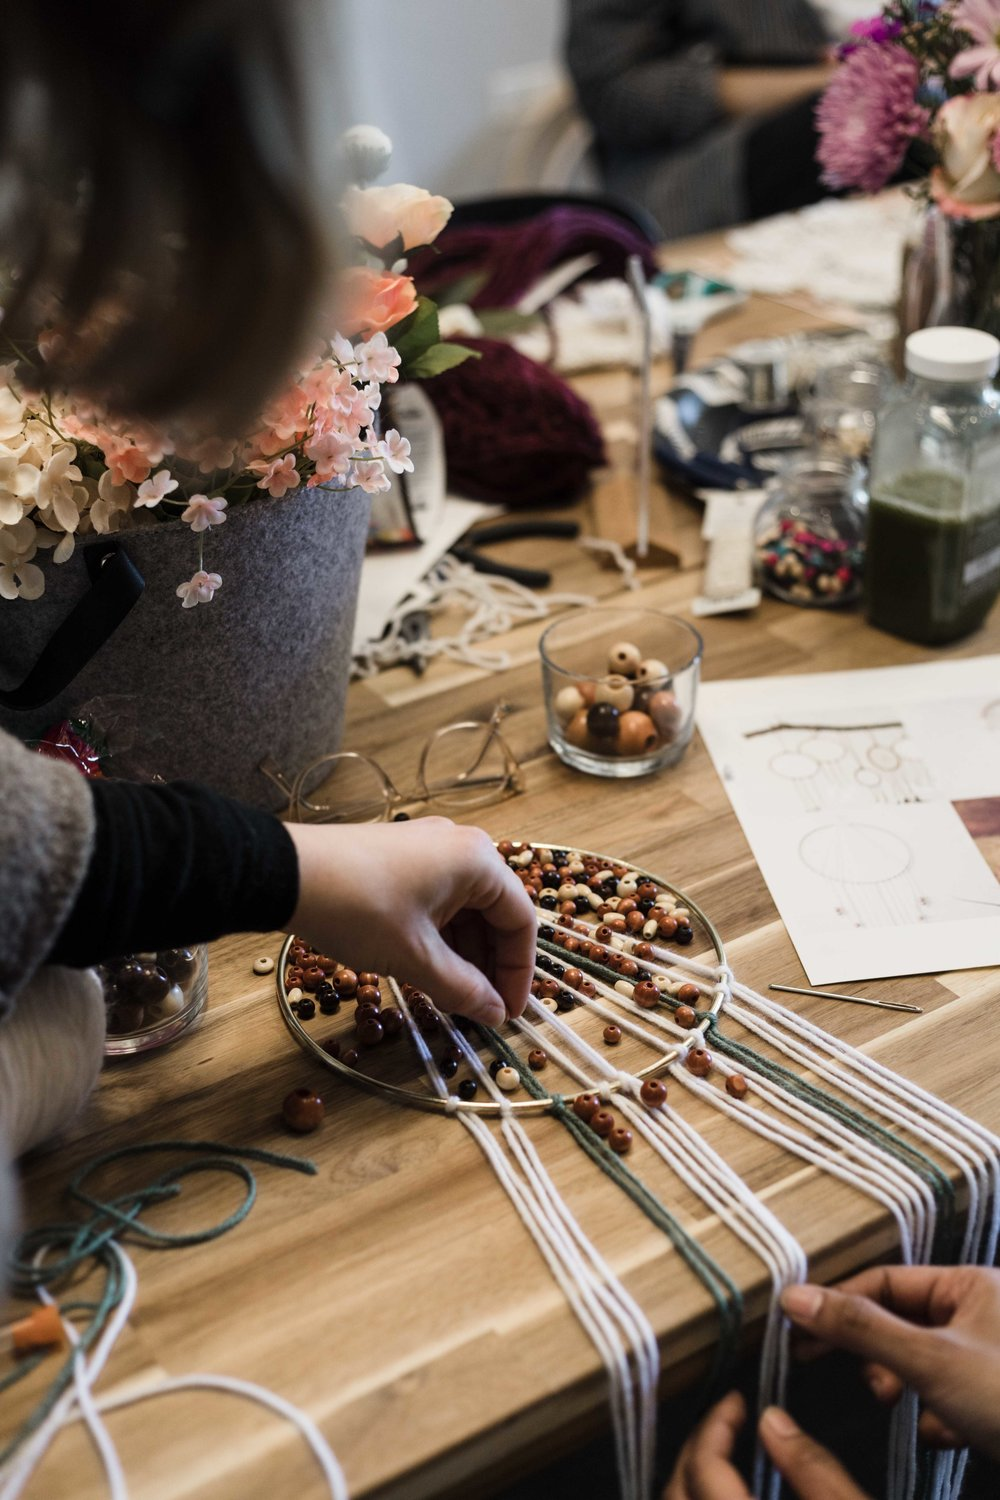 Crafting event at Indigo & Violet Studio for The Glossary on Chicago's north side